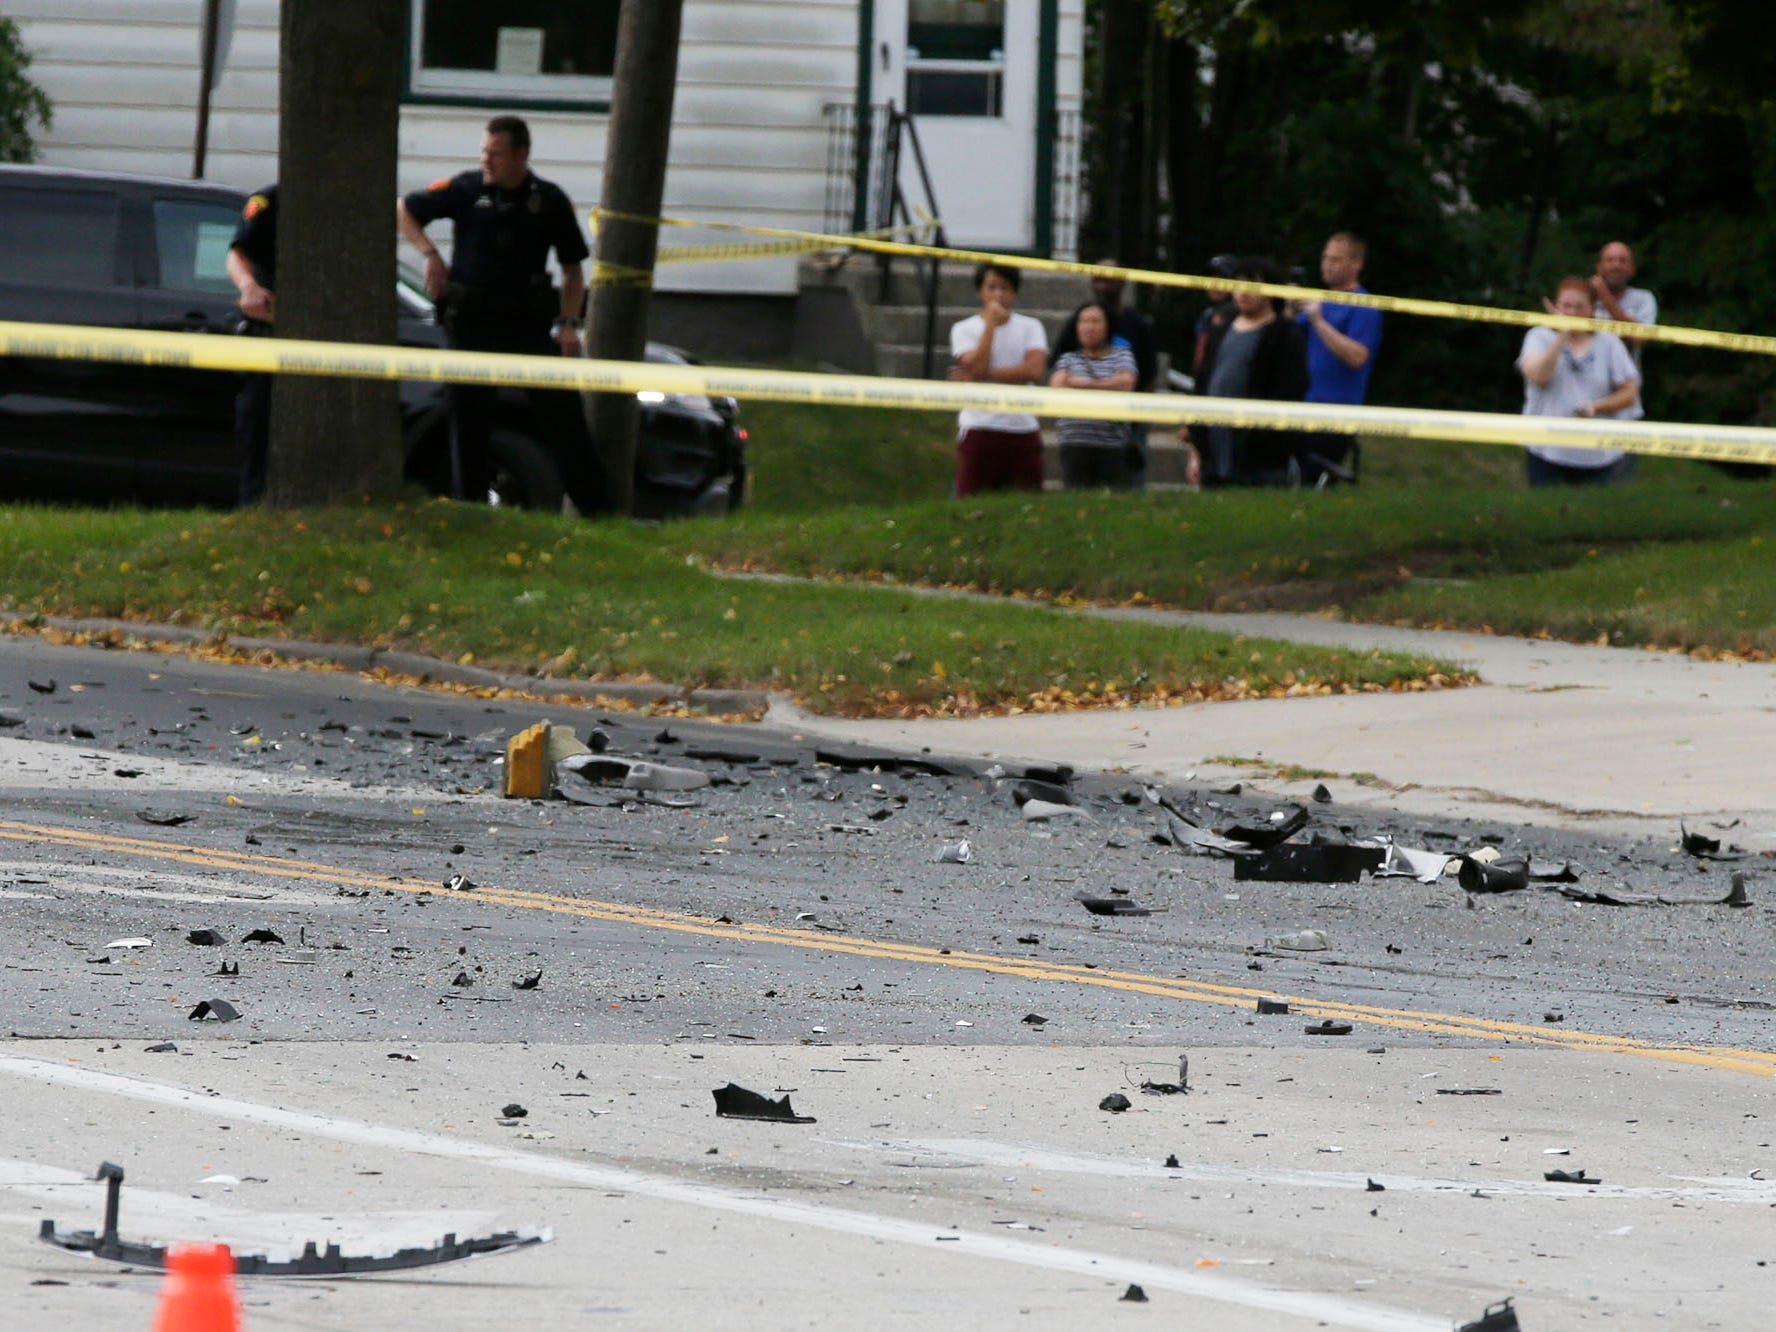 Debris is strewn at the scene of a 2-car crash on Pennsylvania Avenue between 14th and 15th streets, Tuesday, September 18, 2018, in Sheboygan, Wis. A third parked car was also struck. Two people died as a result of the crash.